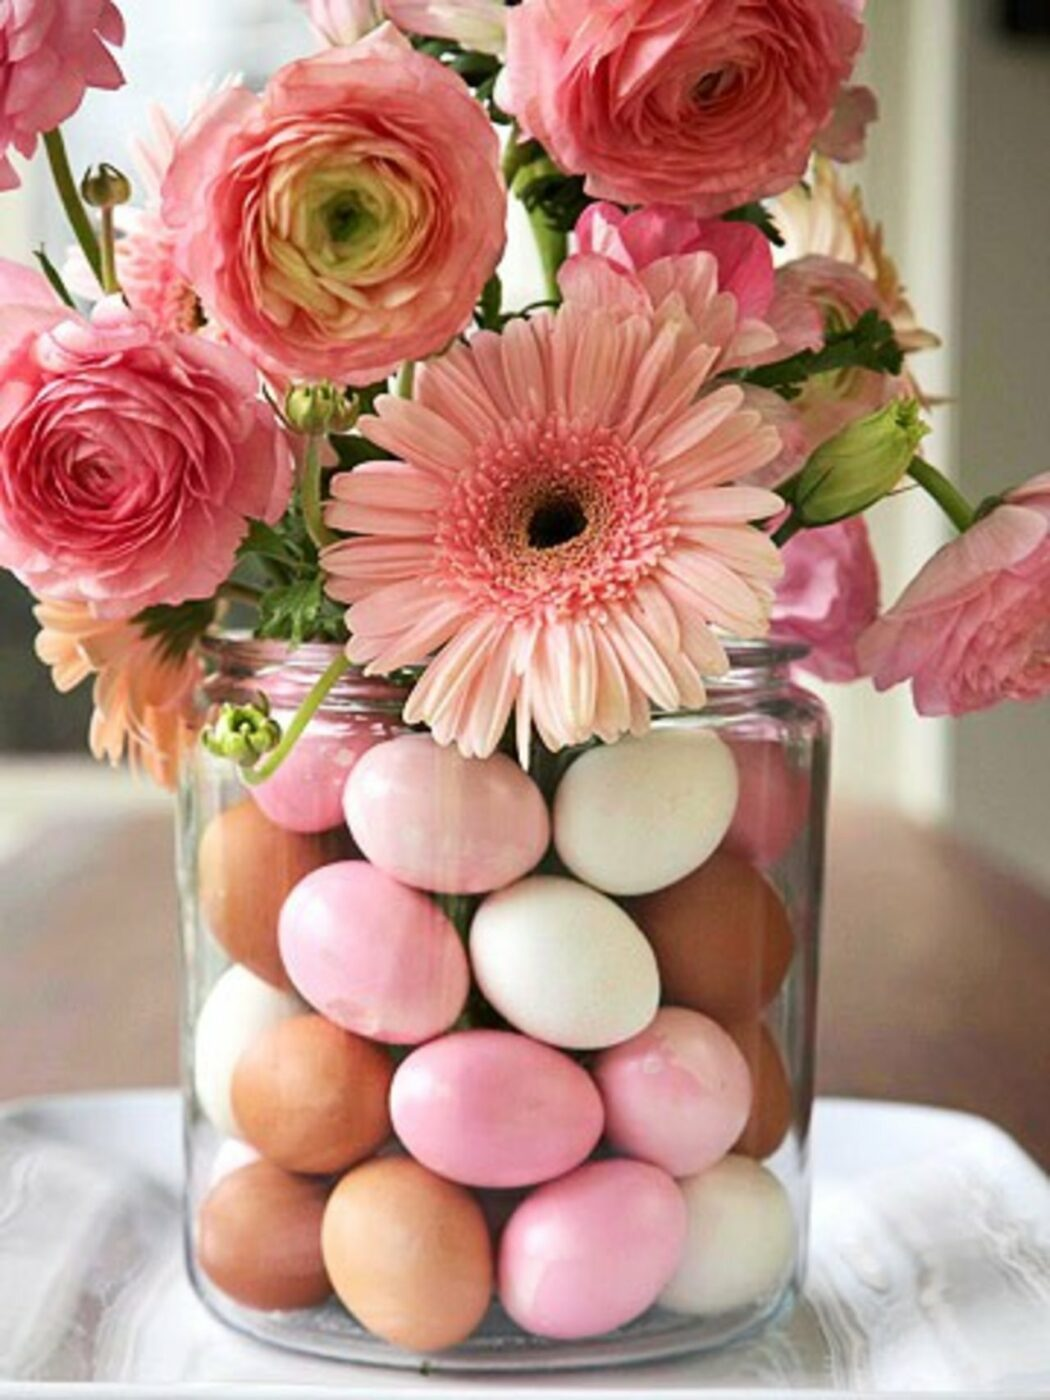 Pretty Pink Posey Egg Display